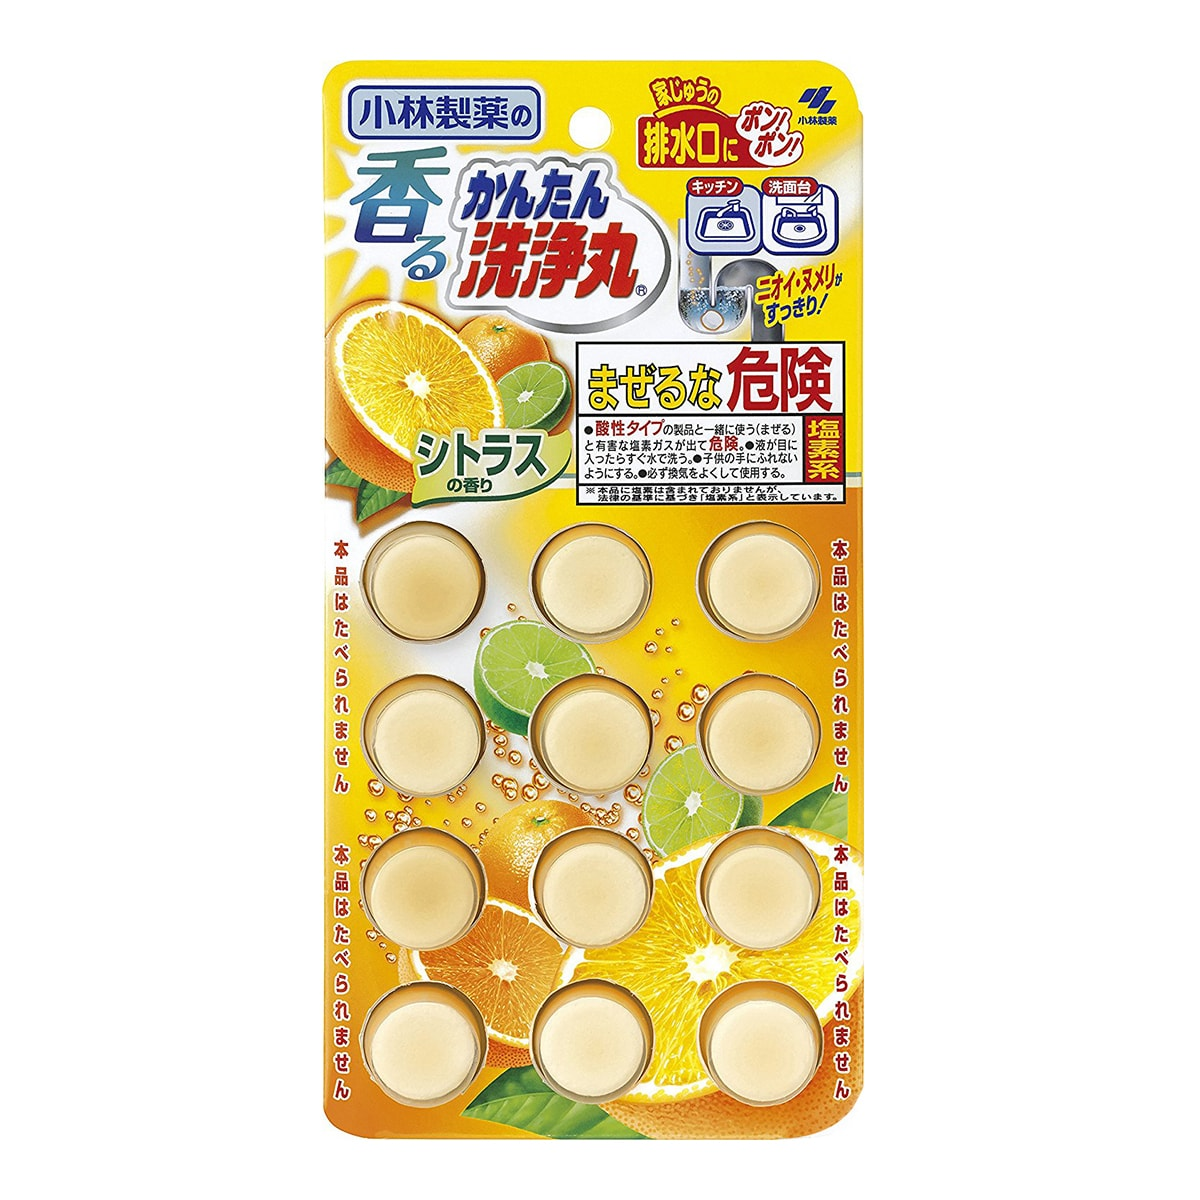 KOBAYASHI Multi Purpose Easy Cleaning Scented Cleaner Orange 12 Tablets